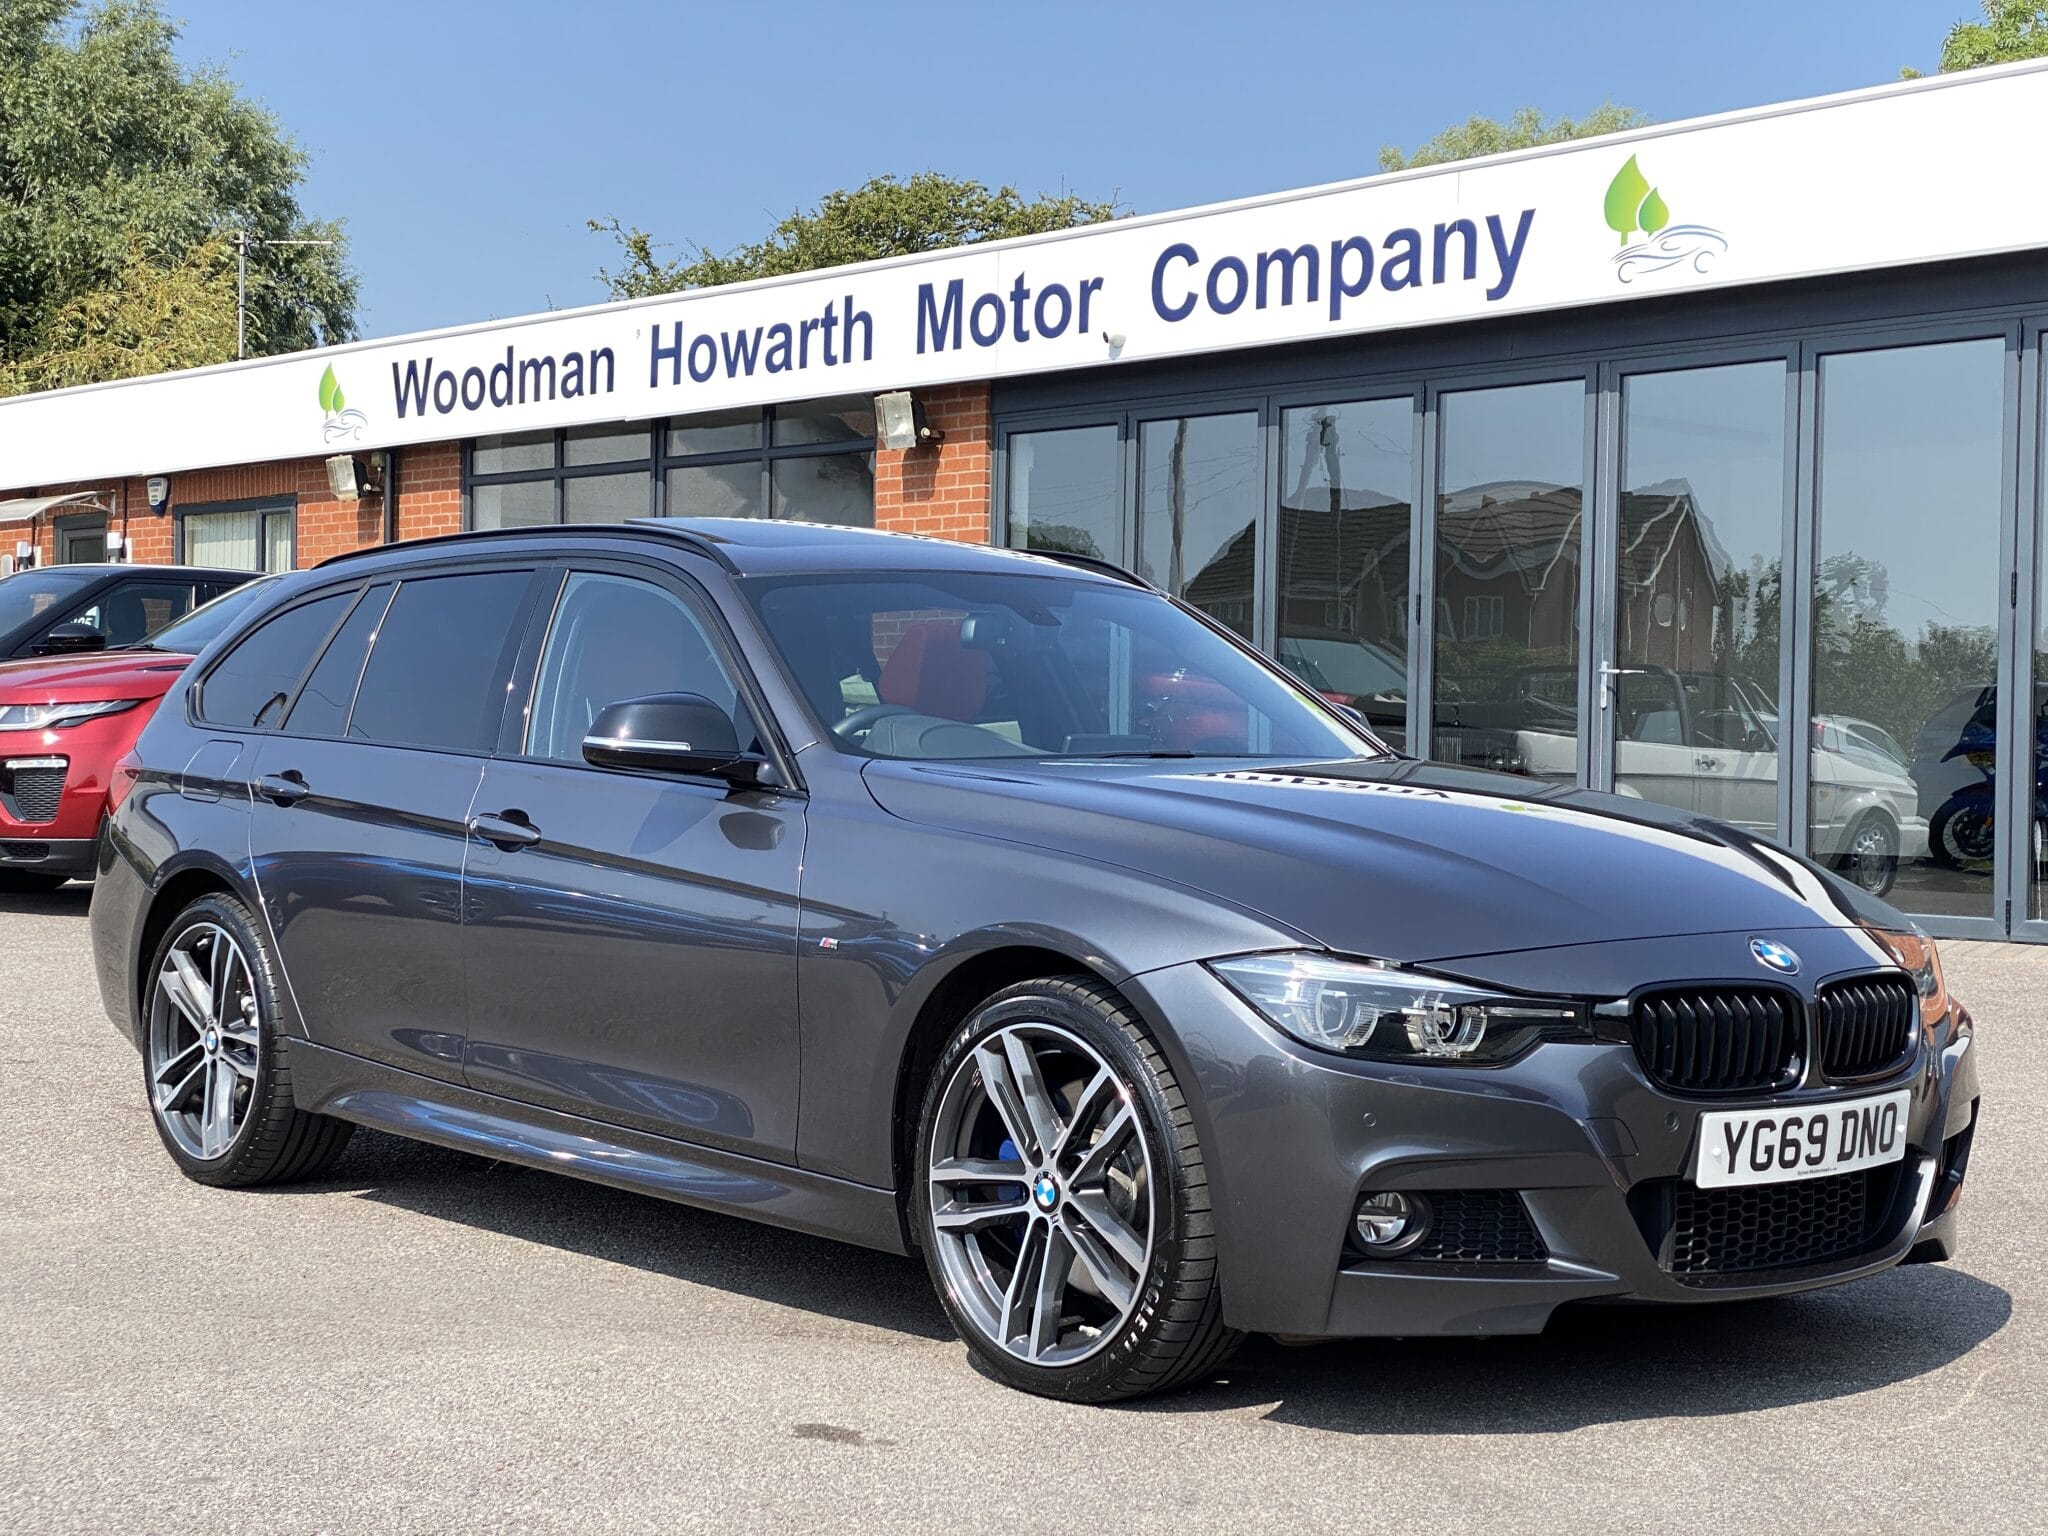 2019 69 BMW 320D M SPORT XDRIVE SHADOW EDITION TOURING AUTO Panoramic Glass Sunroof Low Miles